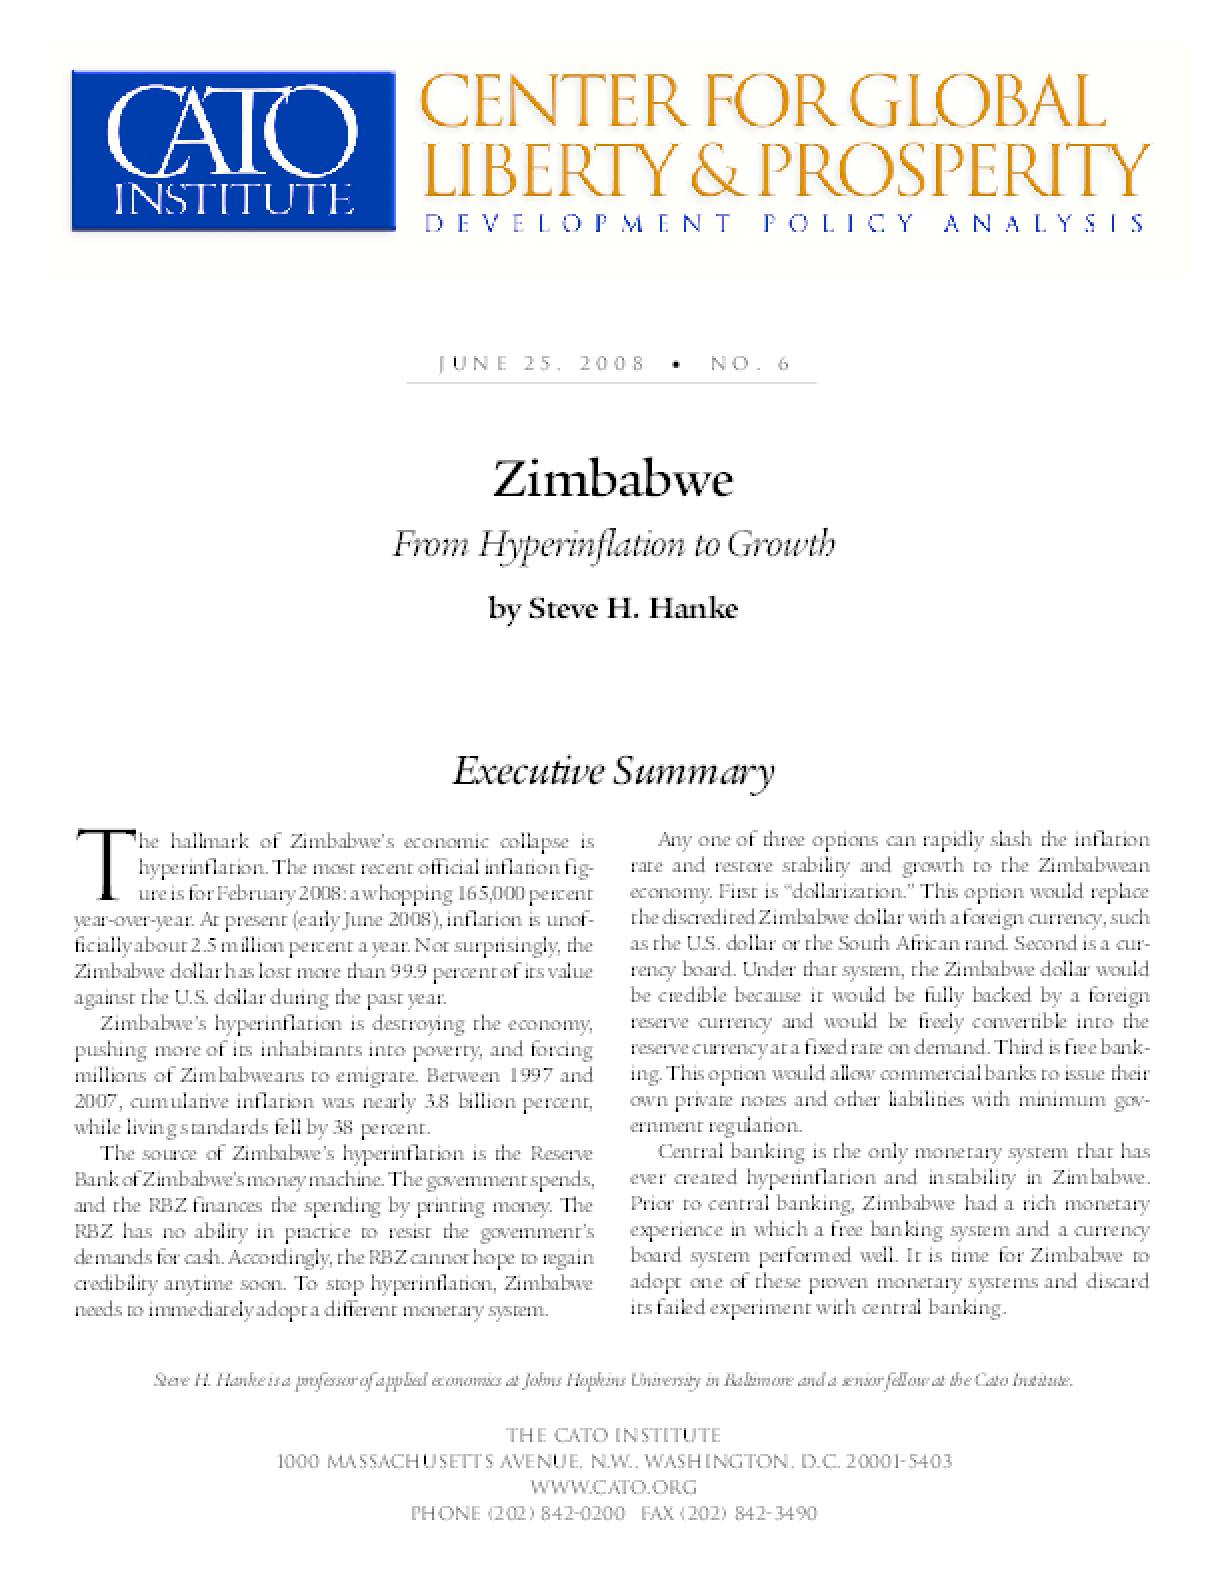 Zimbabwe: From Hyperinflation to Growth